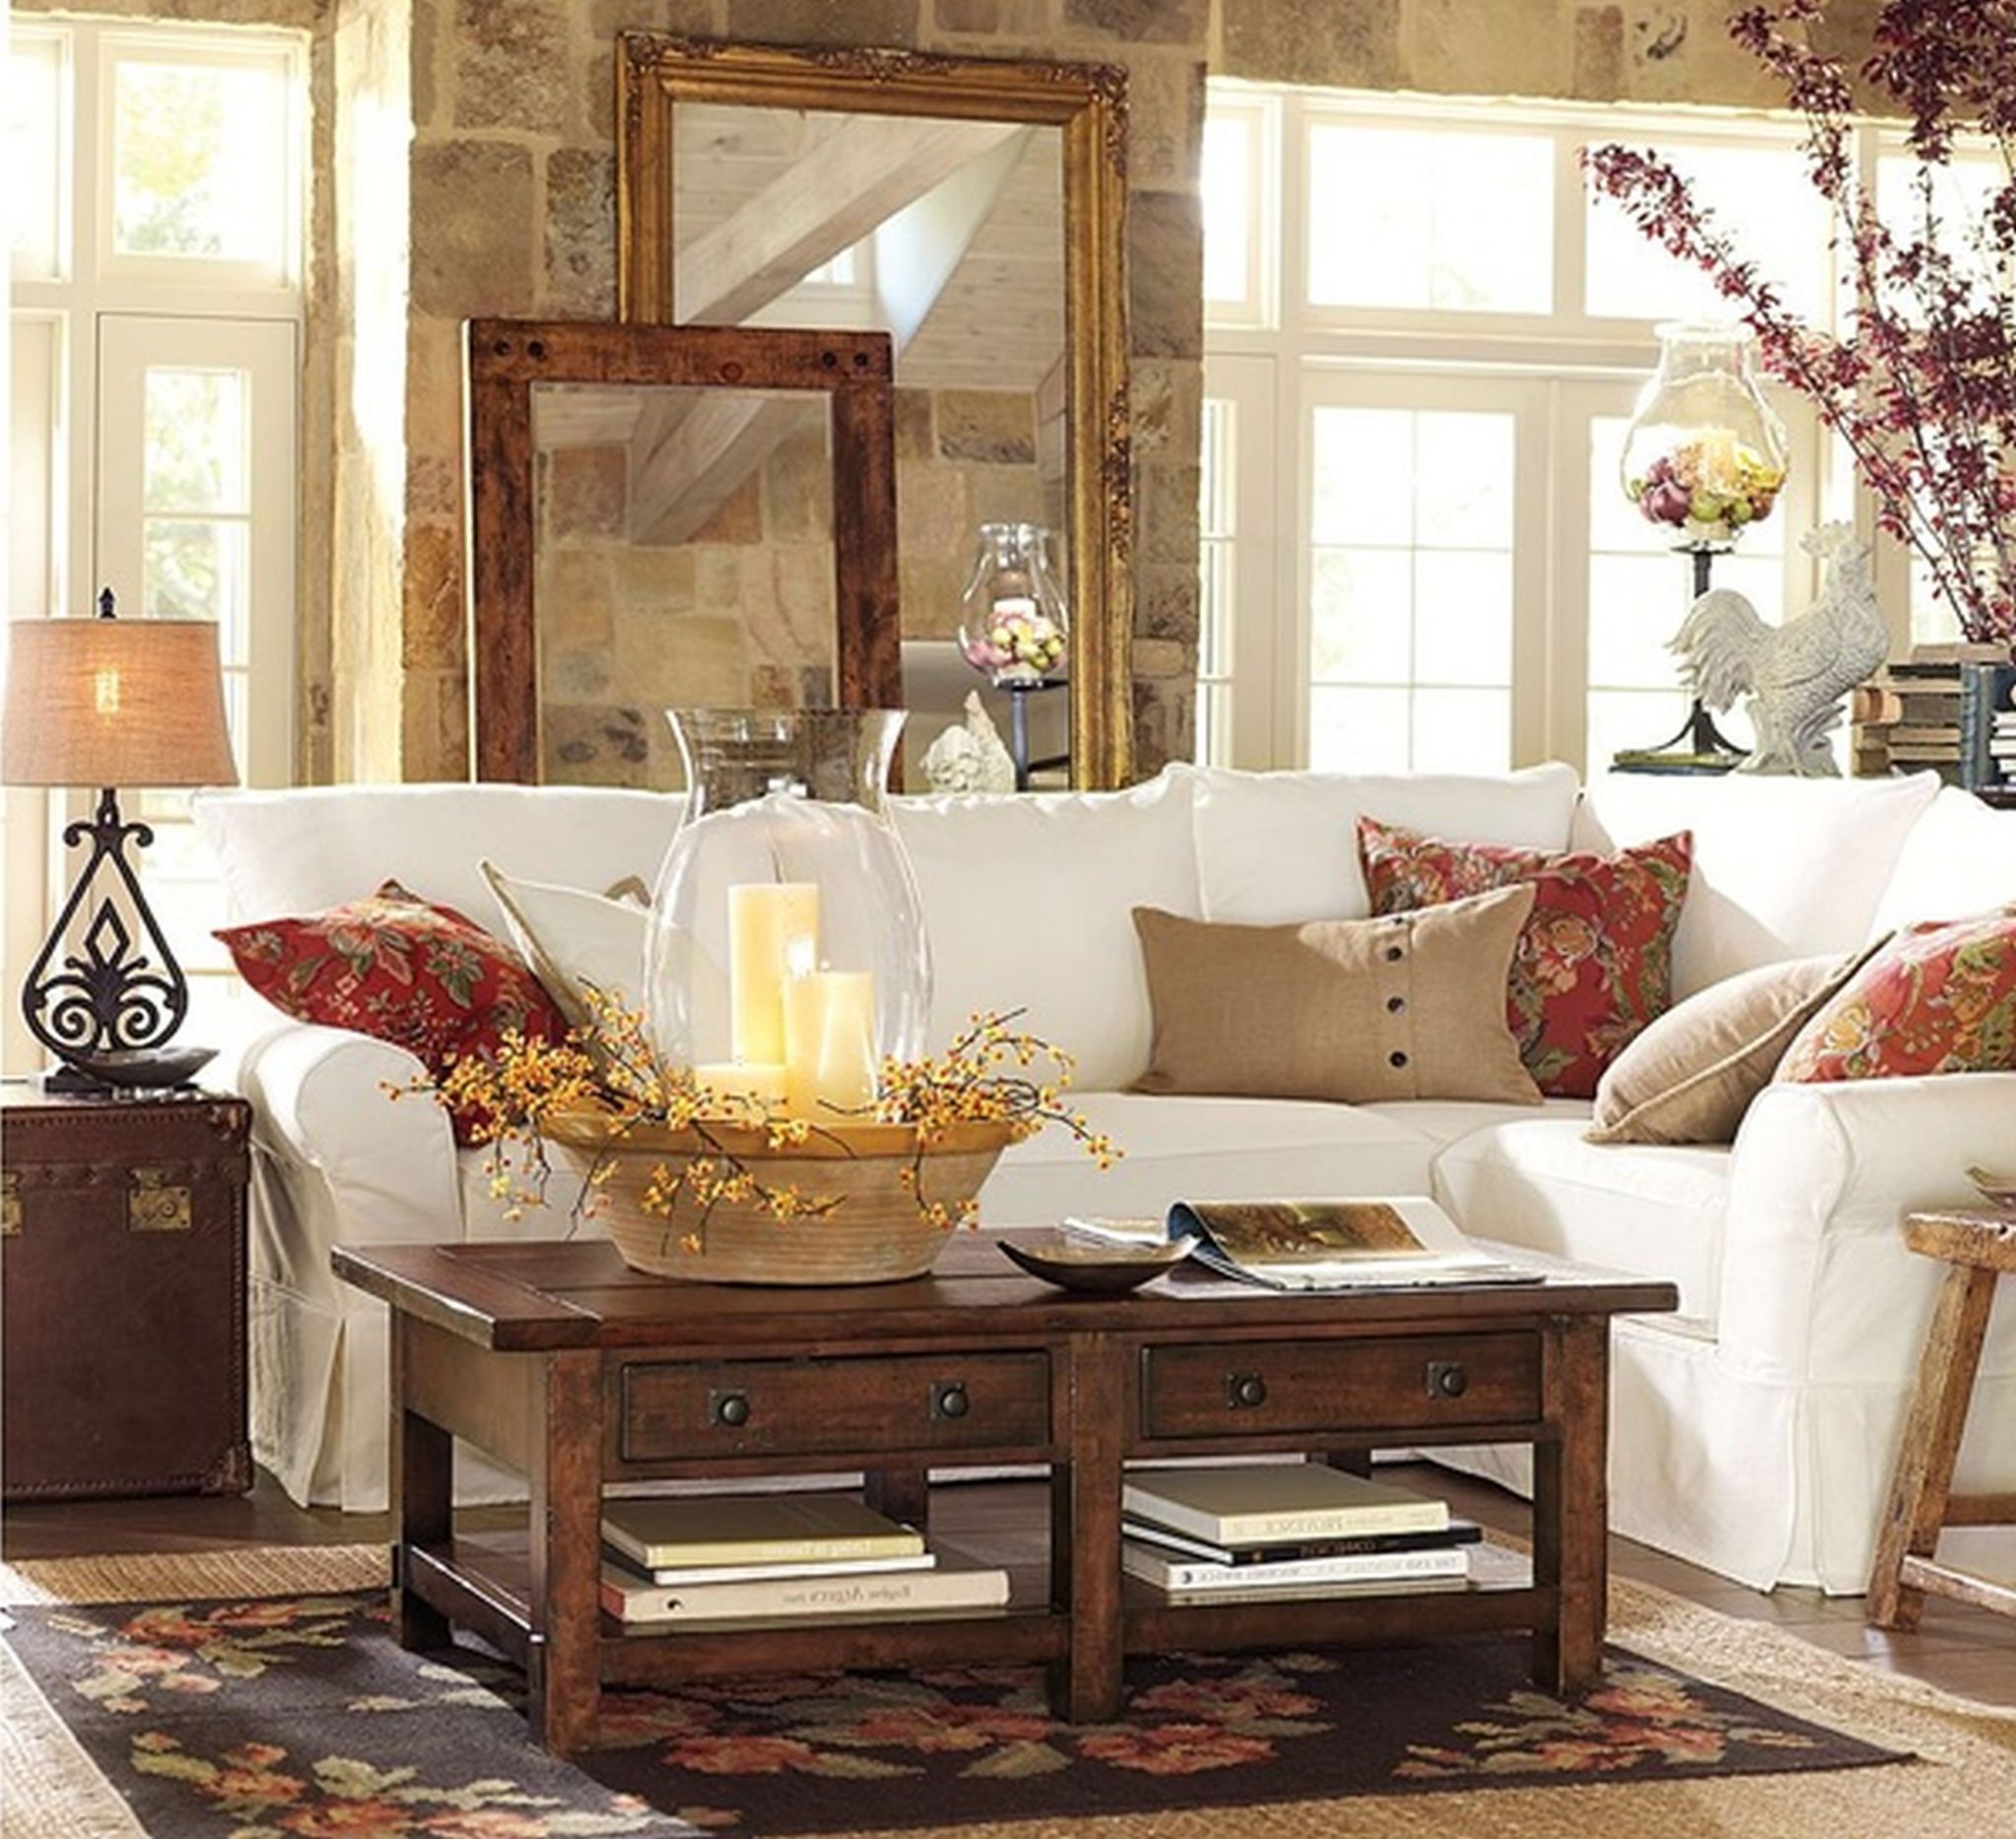 Decoration Design: How To Get The Best Deal On Pottery Barn Living Room